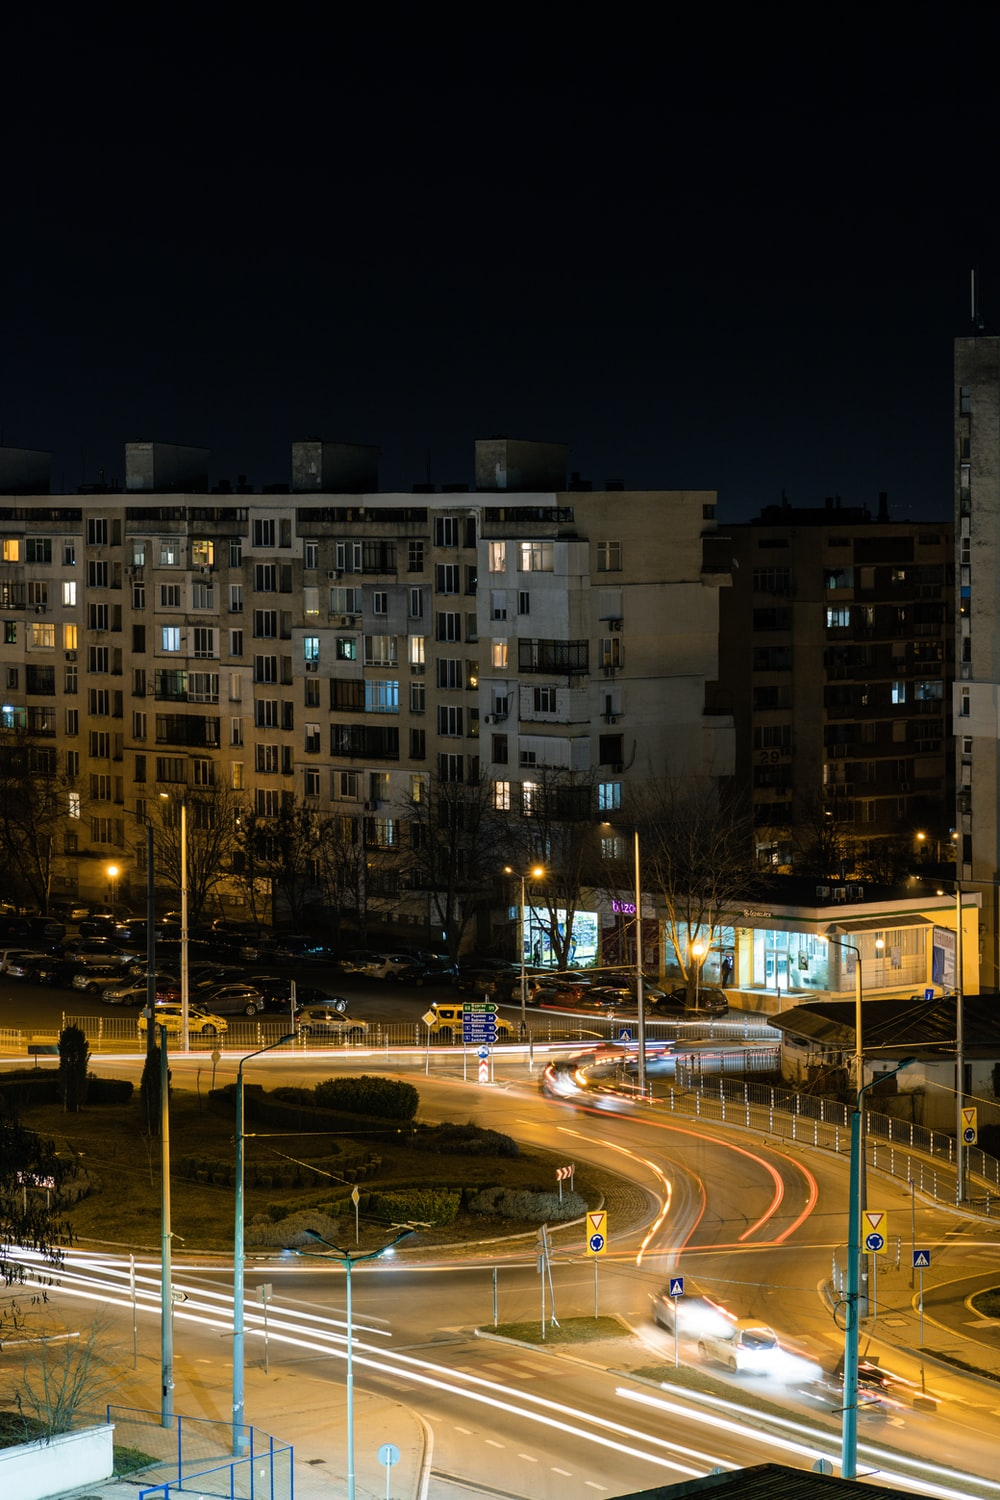 time lapse photography of cars on road near high rise building during night time